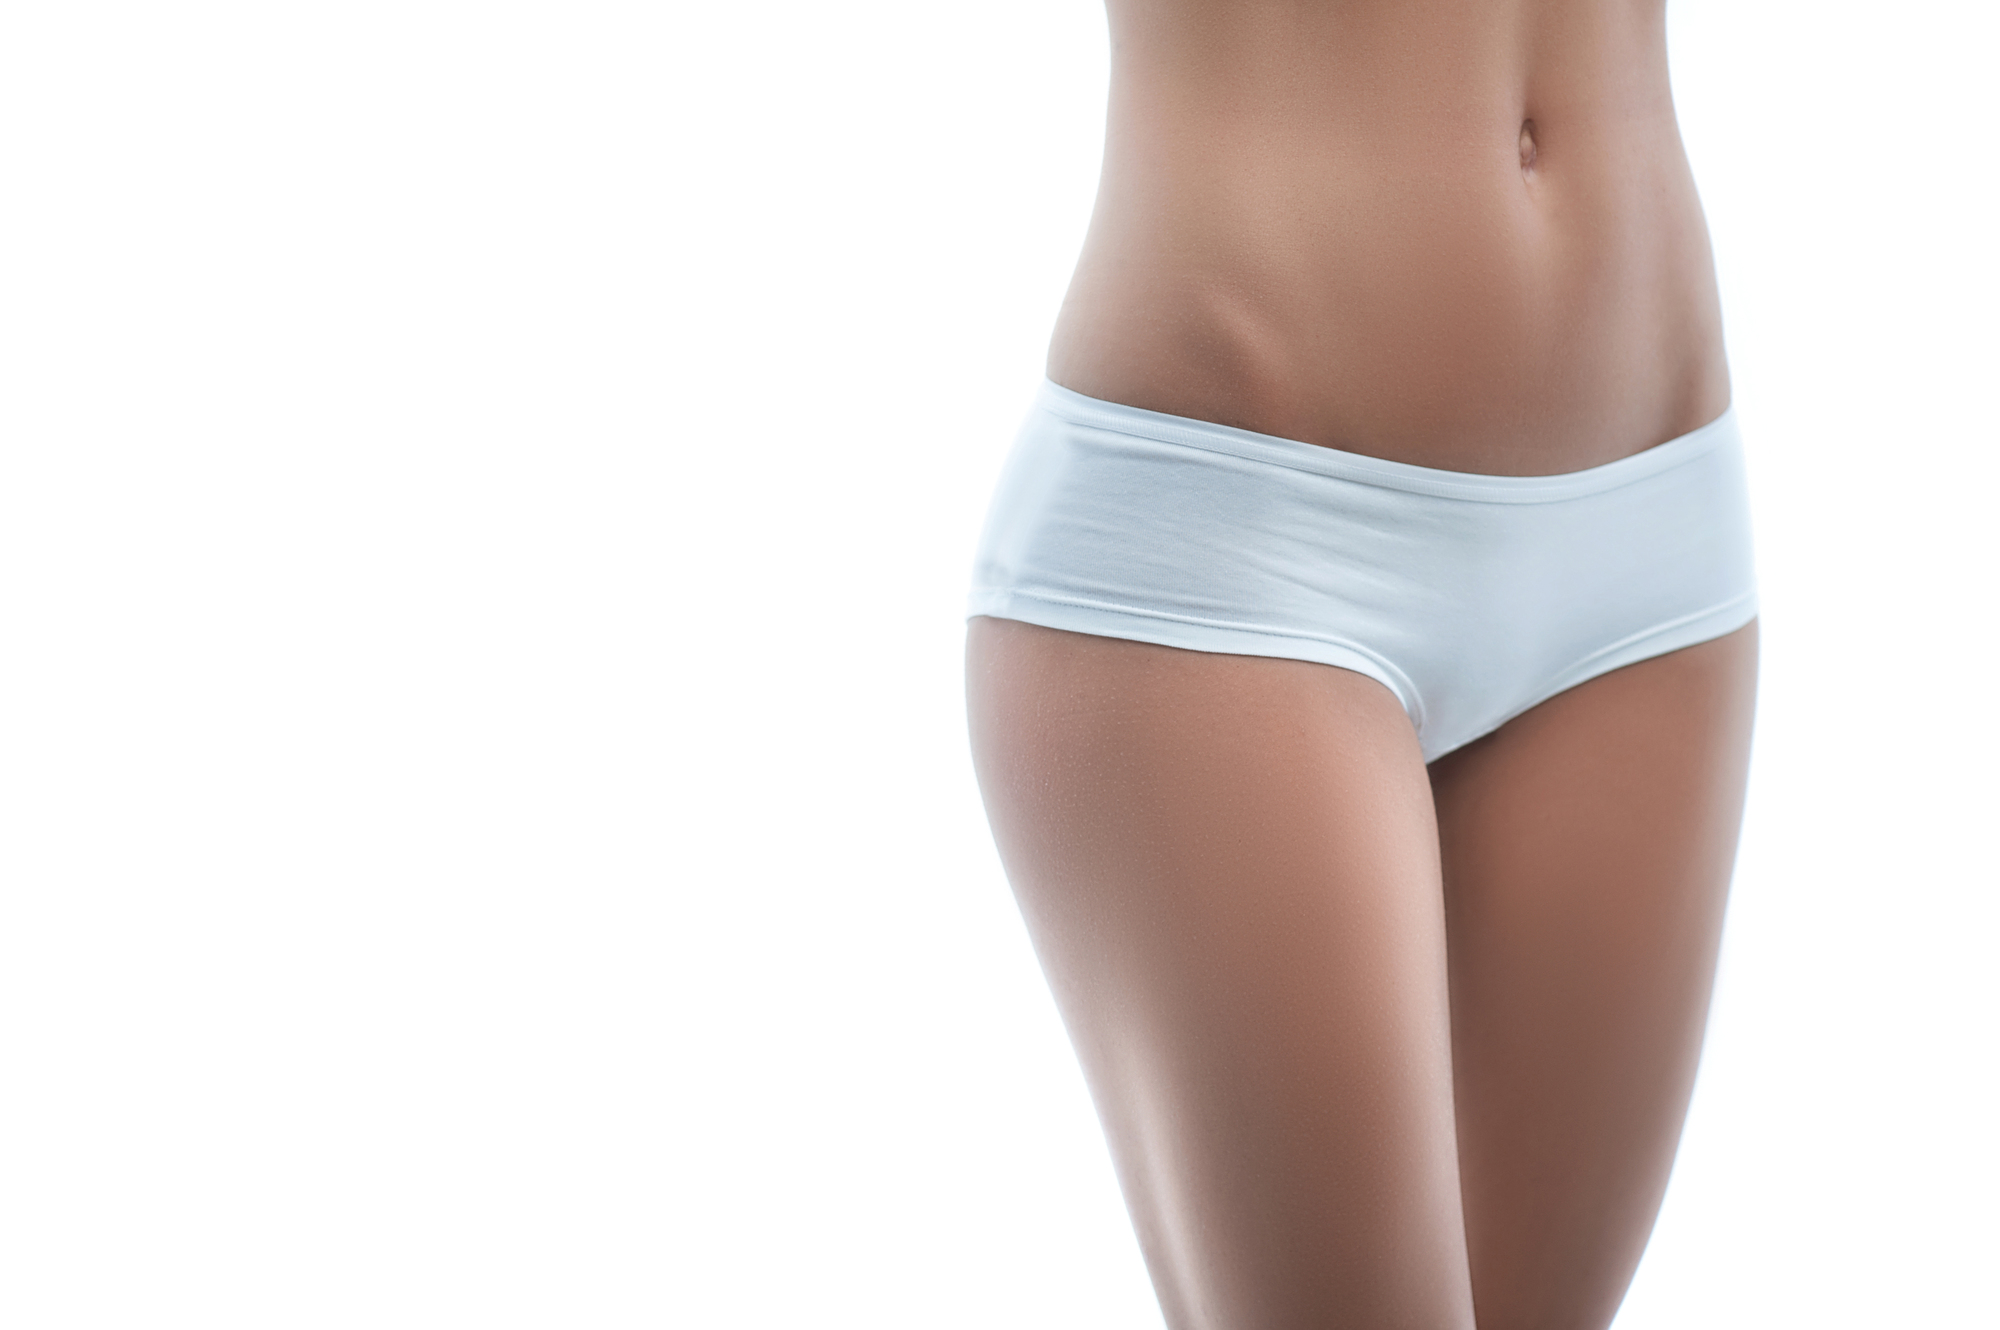 Look at my perfect figure. Close up of slim waist of young woman standing in white panties. Isolated and copy space in left side